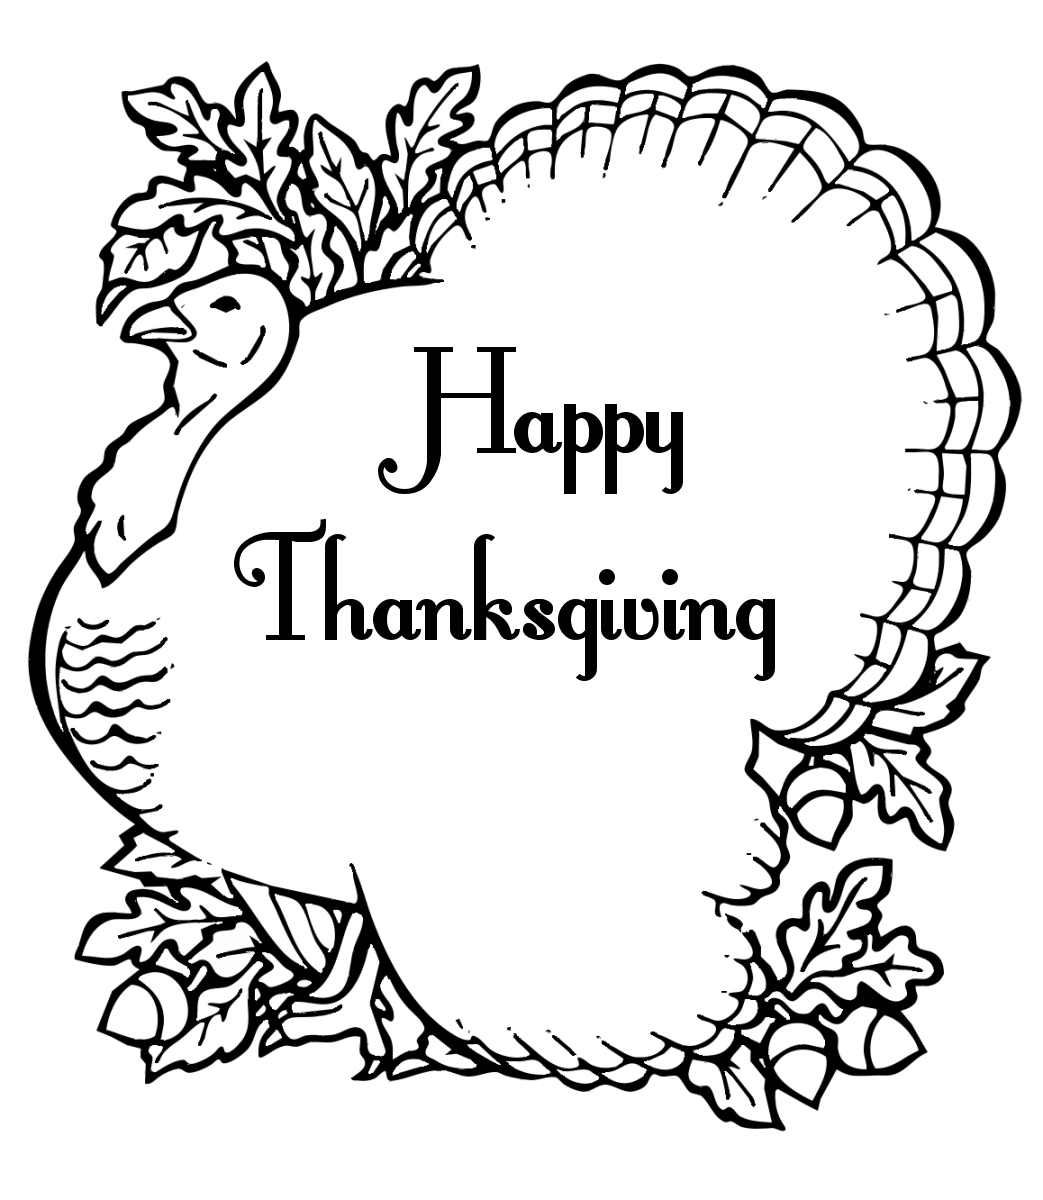 turkeys to color free printable turkey coloring pages for kids turkeys to color 1 1